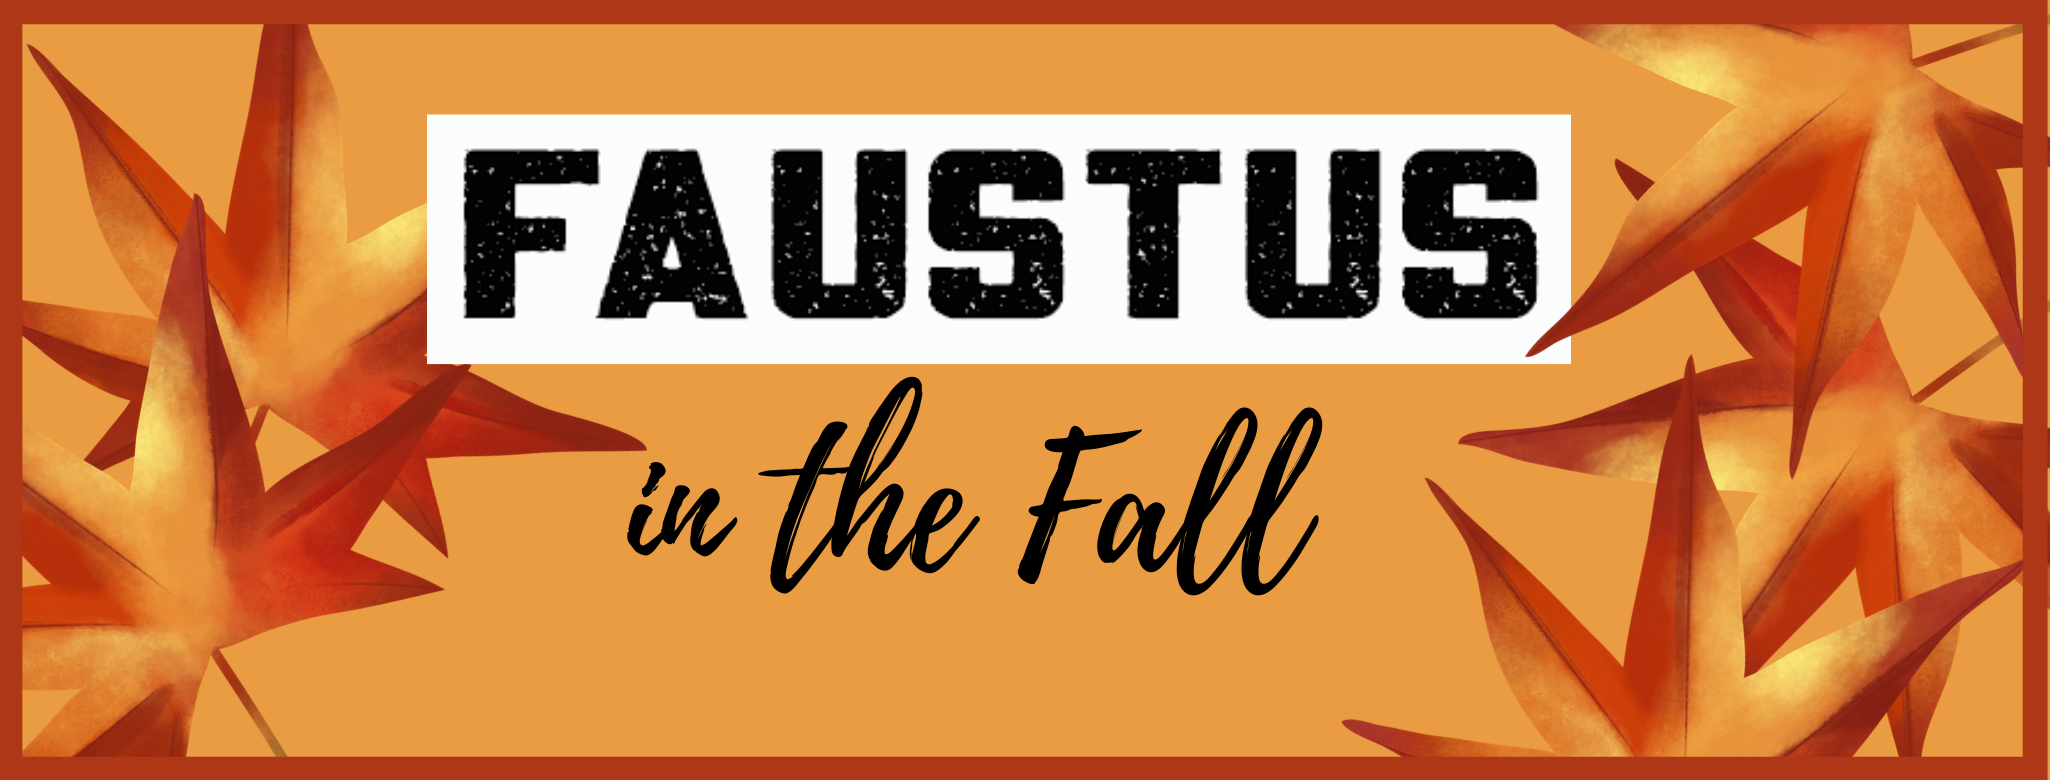 Faustus in the Fall – Sunday evening concerts with Saul, Benji and Paul